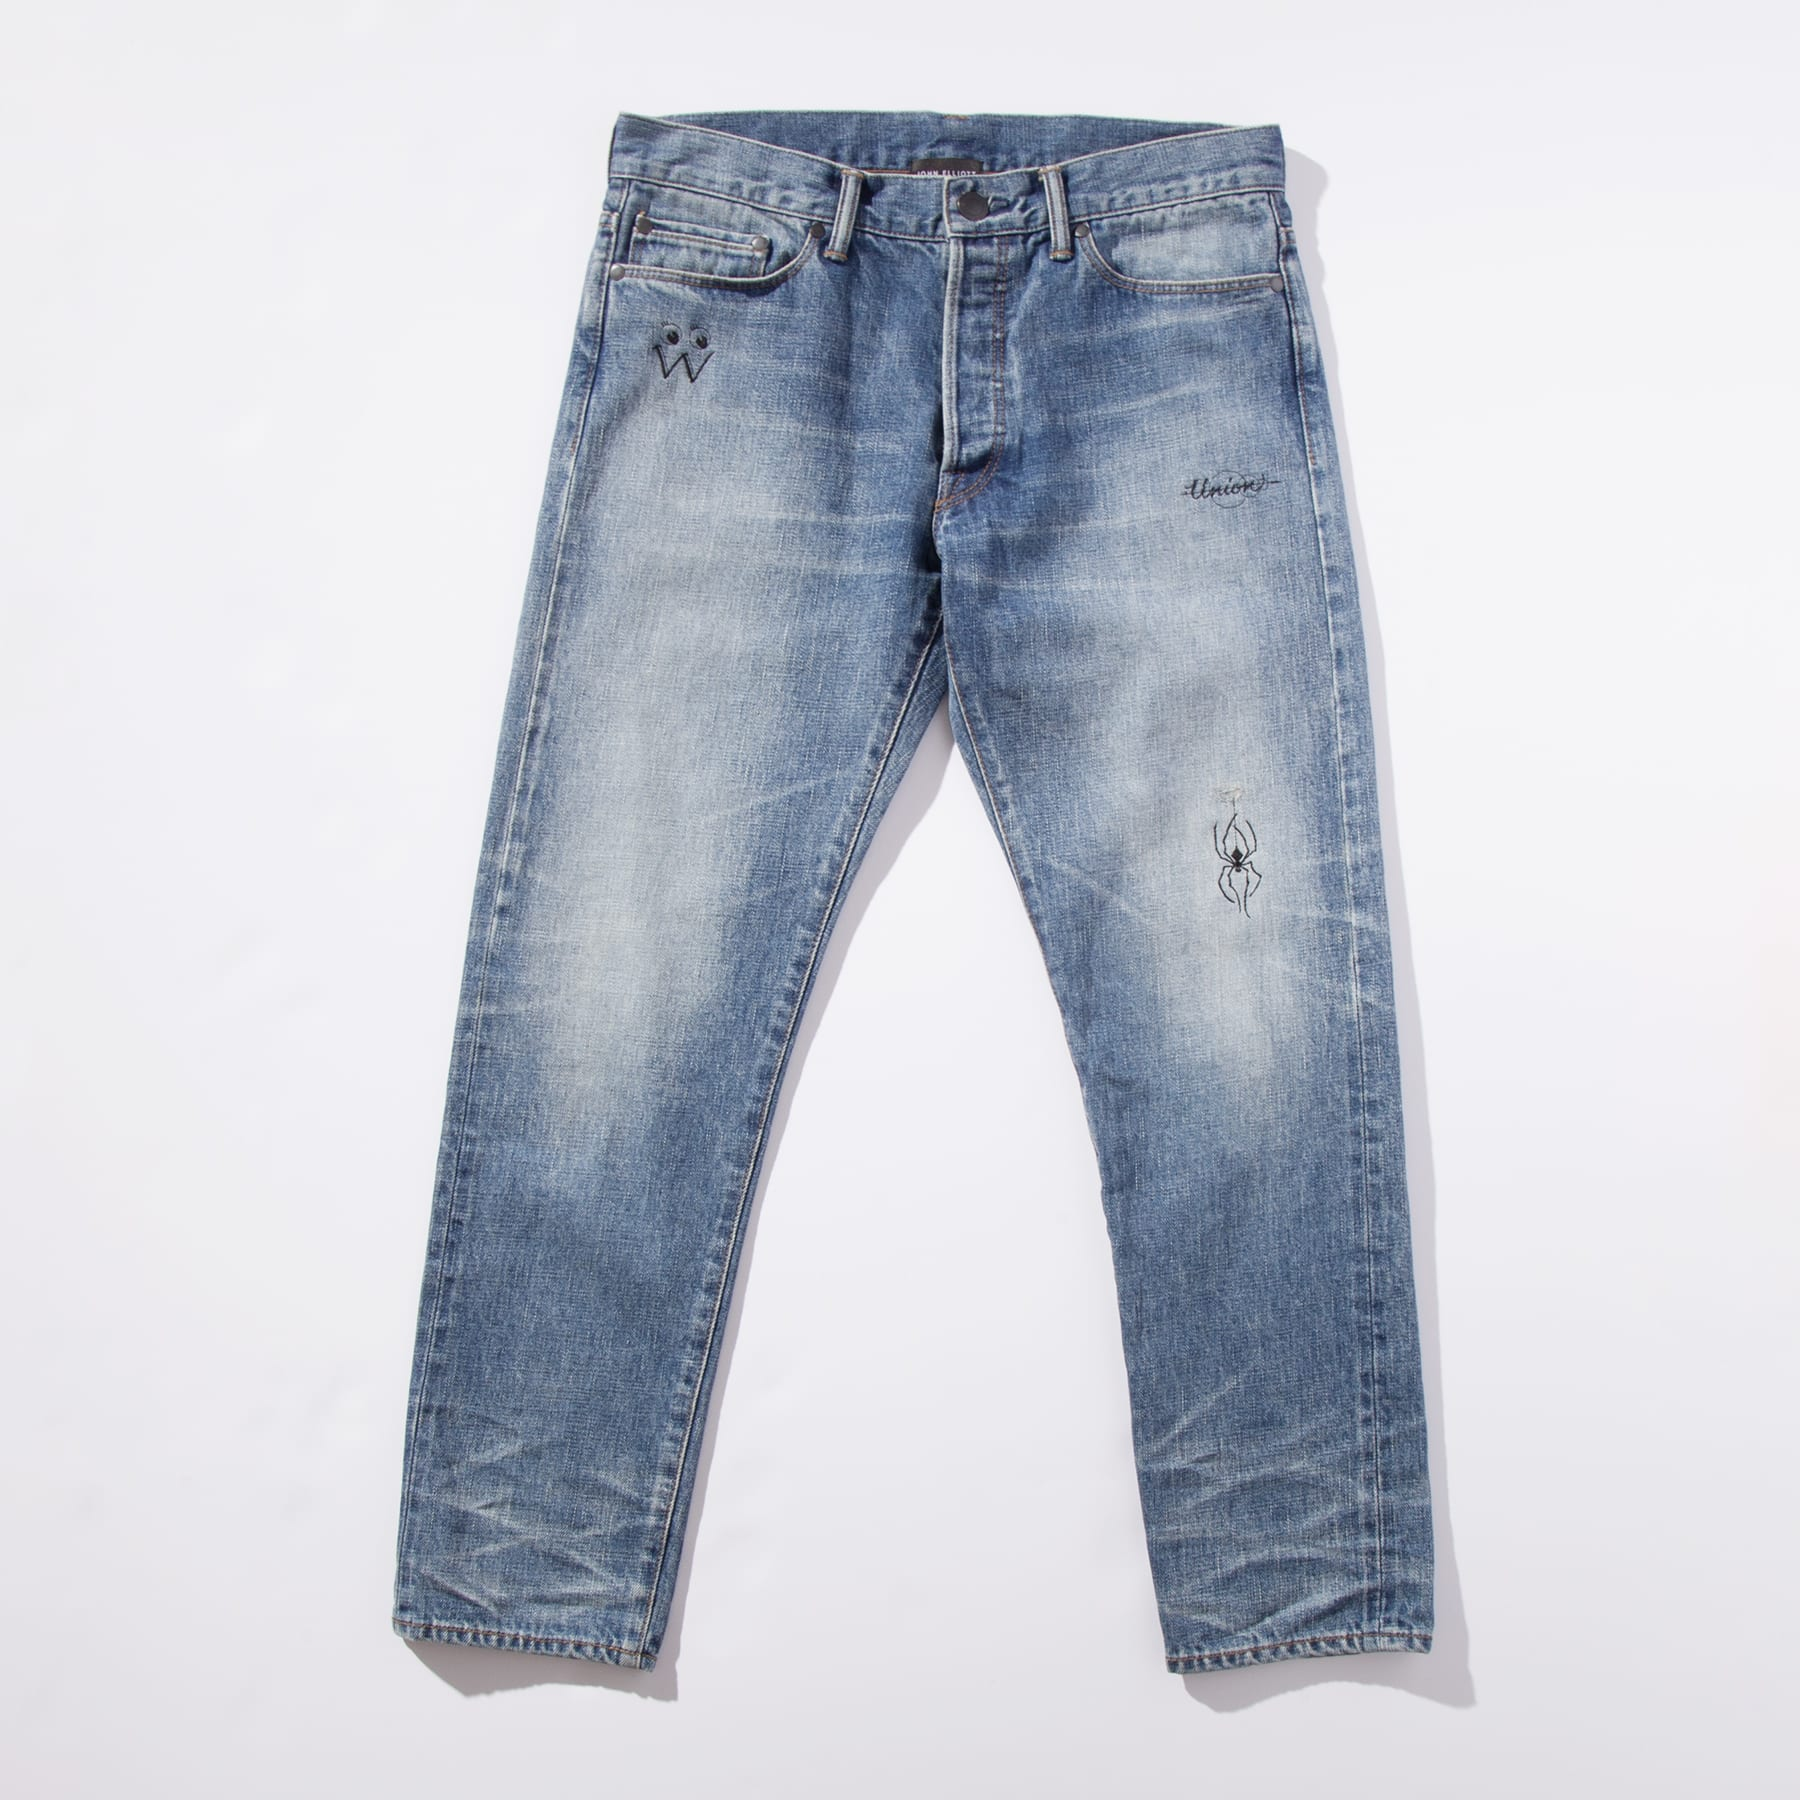 John Elliott x Union x Dr. Woo Selvedge Denim Jeans